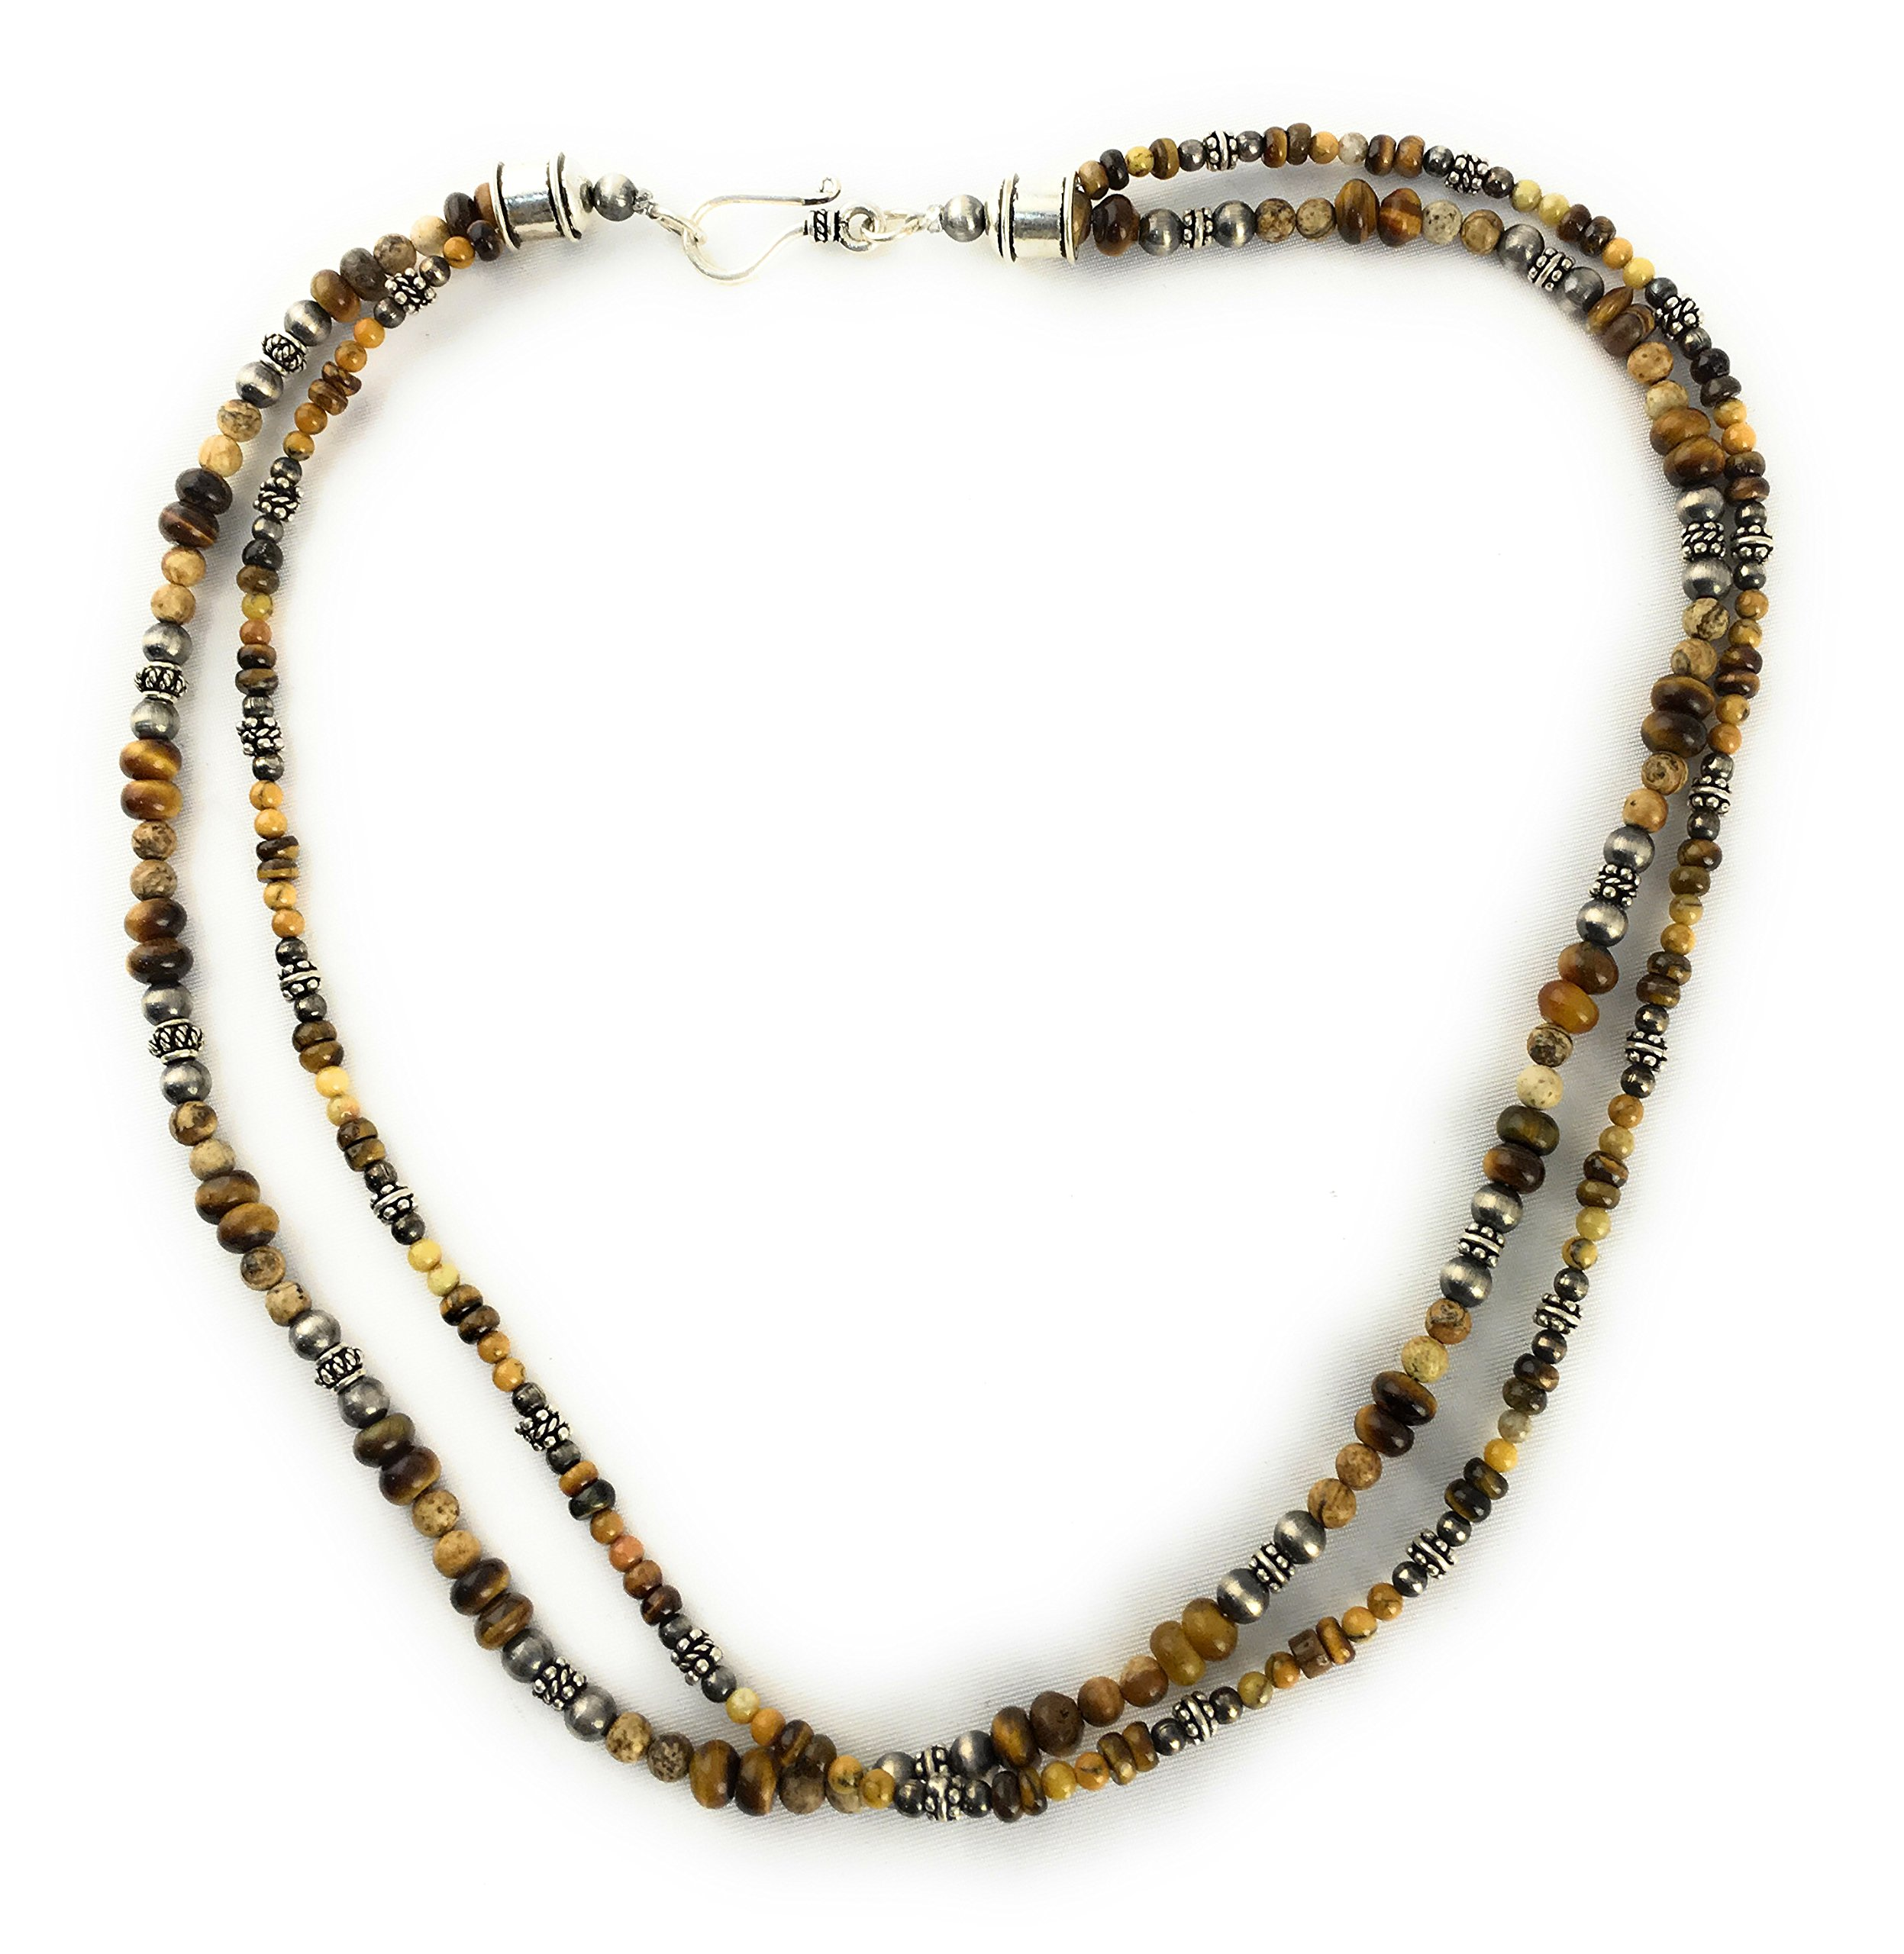 Masha Storewide Sale ! Sterling Silver Necklace By Tigers Eye, Picture Jasper, Made in USA - Exclusive Southwestern Handmade Jewelry, 2 Strand Gift